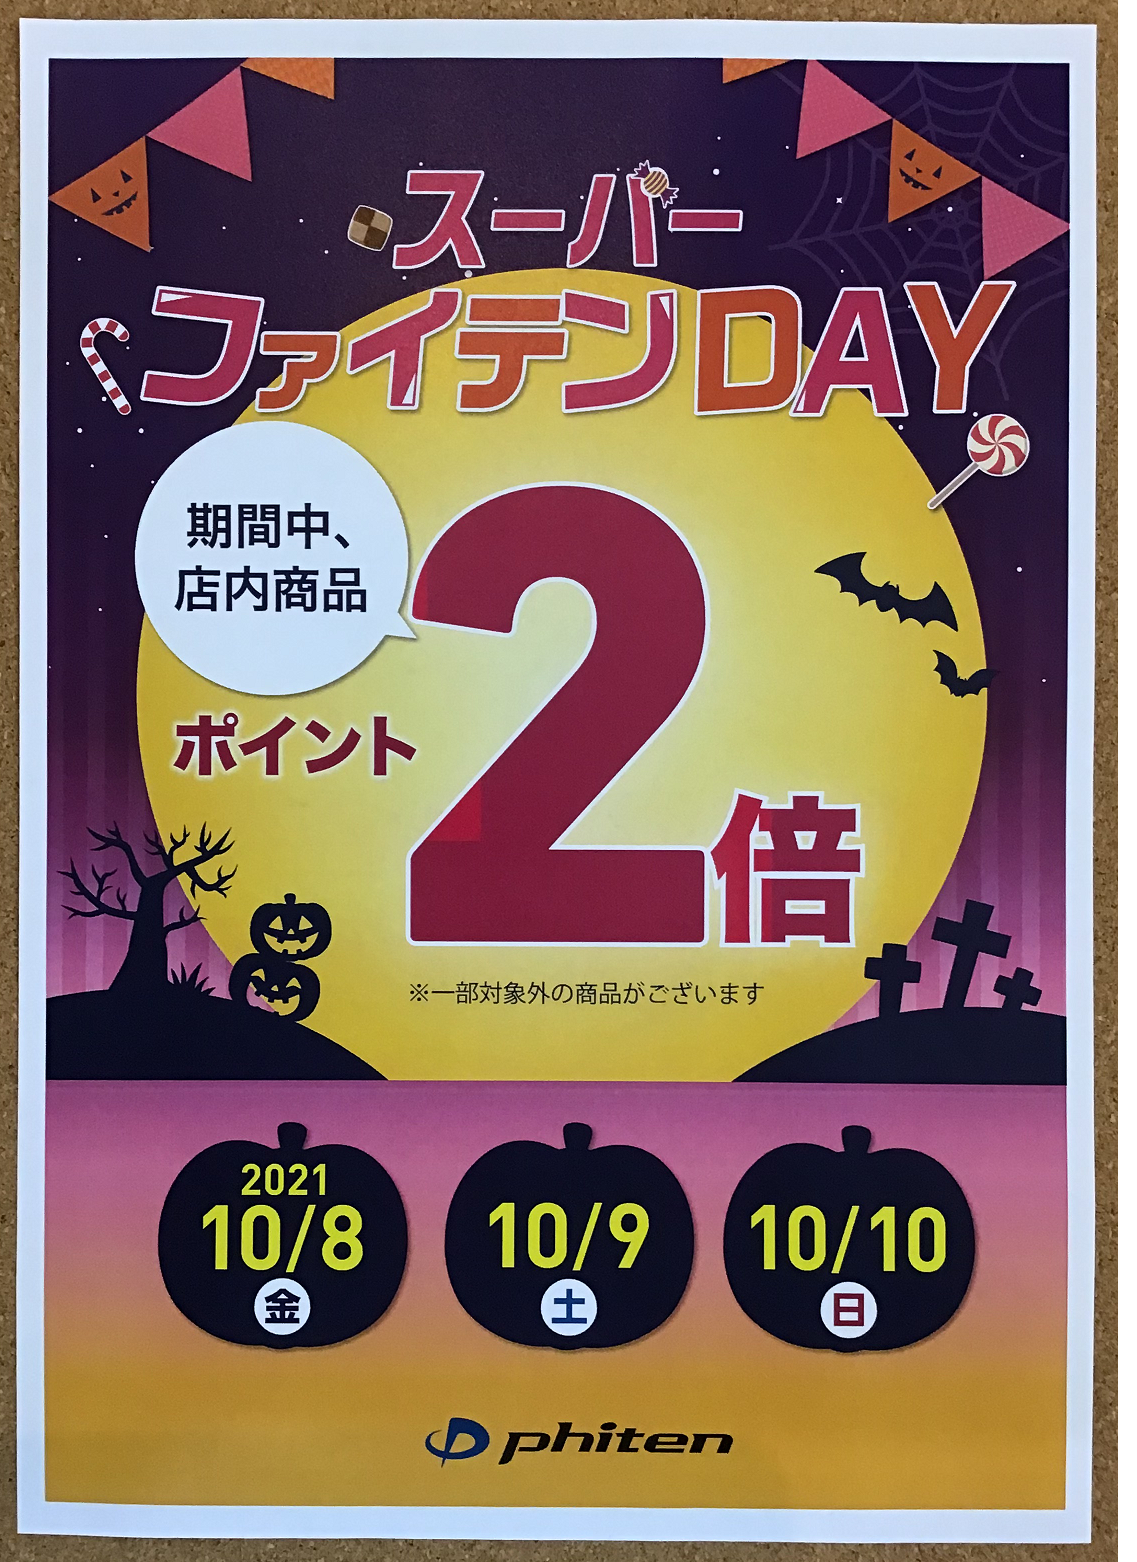 20211008SPΦDAY.png